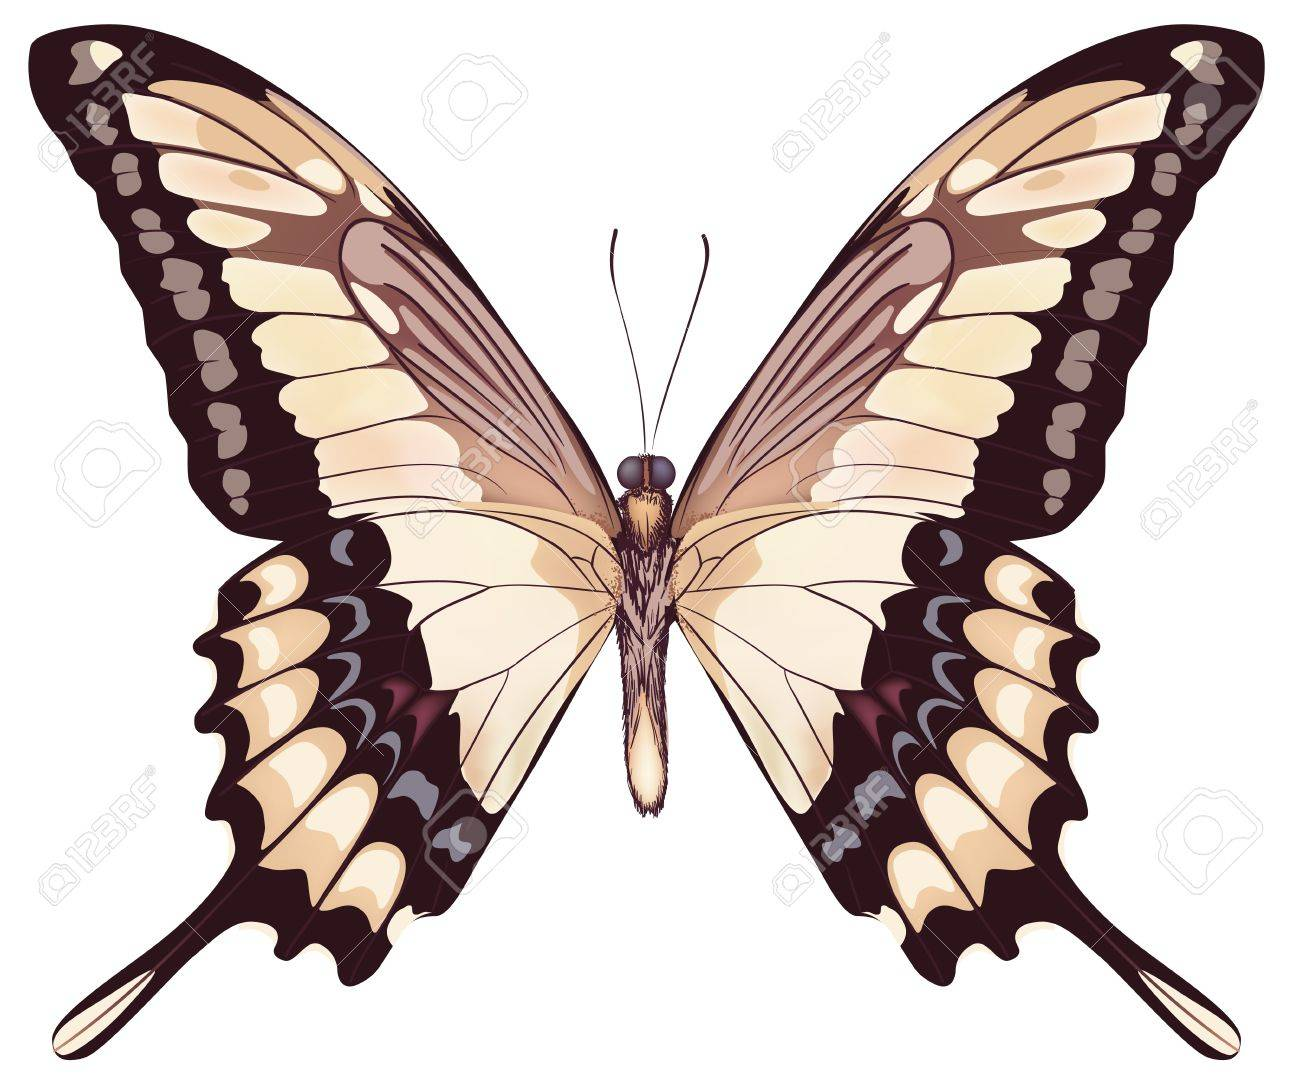 Isolated Light Butterfly Stock Vector - 13820263